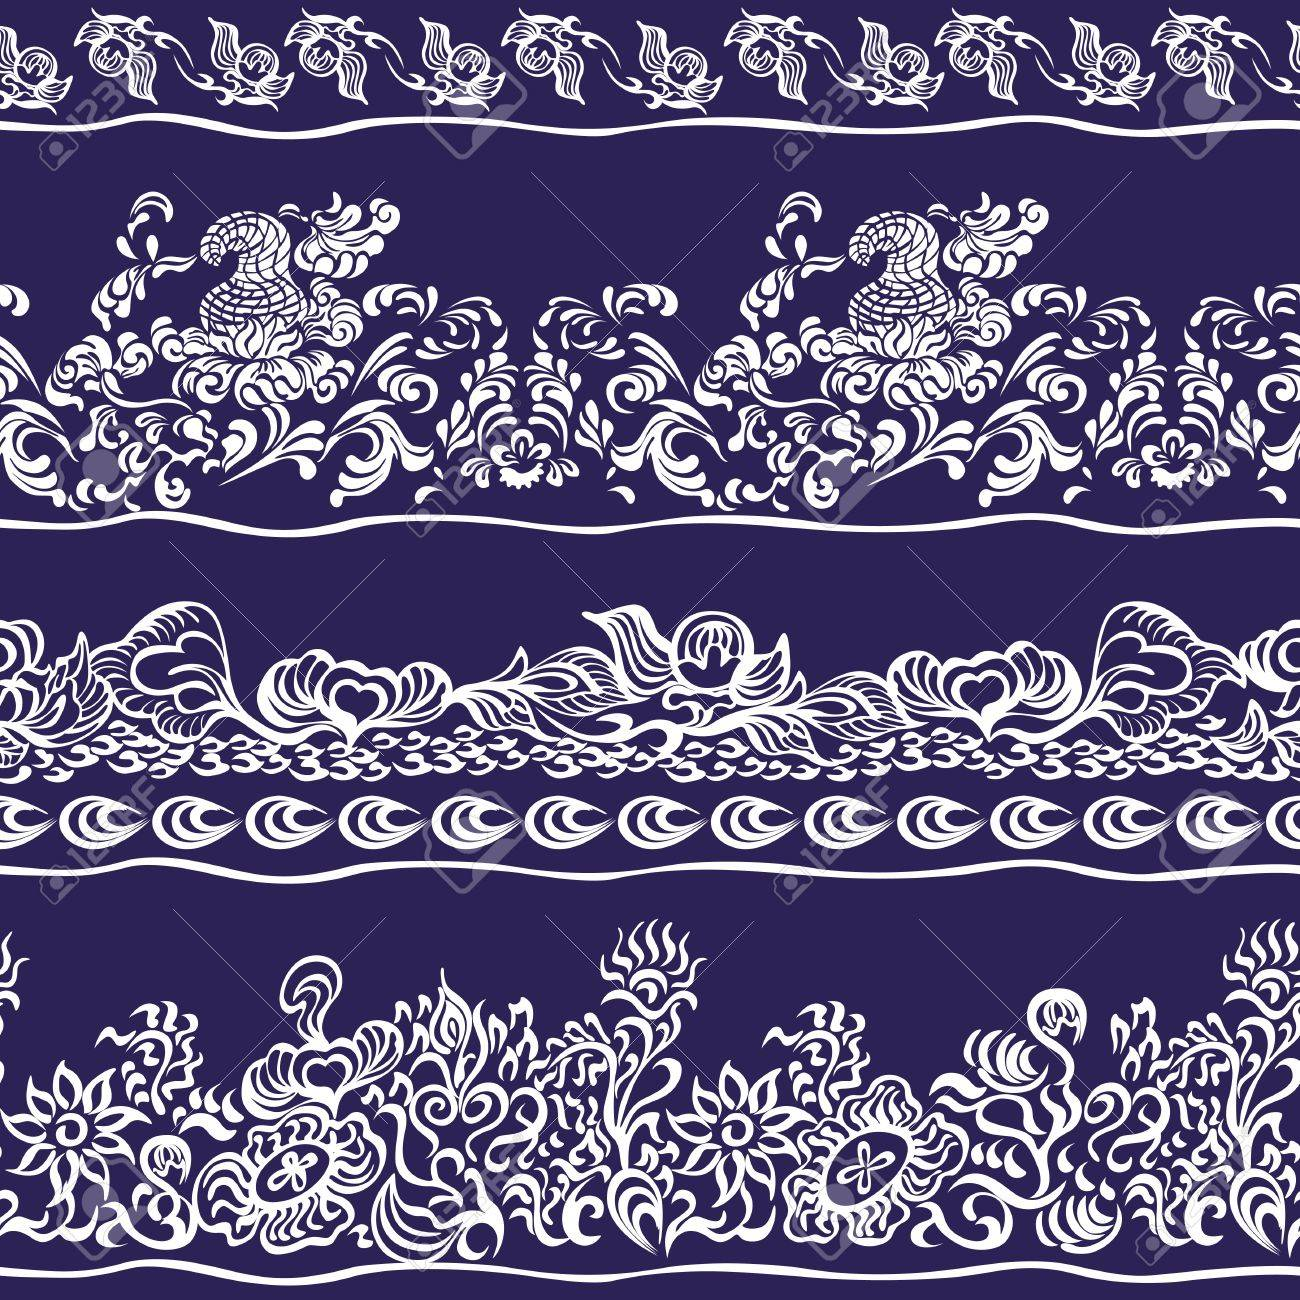 Design border, webbing, lace seamless pattern with swirling decorative floral elements. Edge of the fabric, wallpaper Stock Vector - 20035736